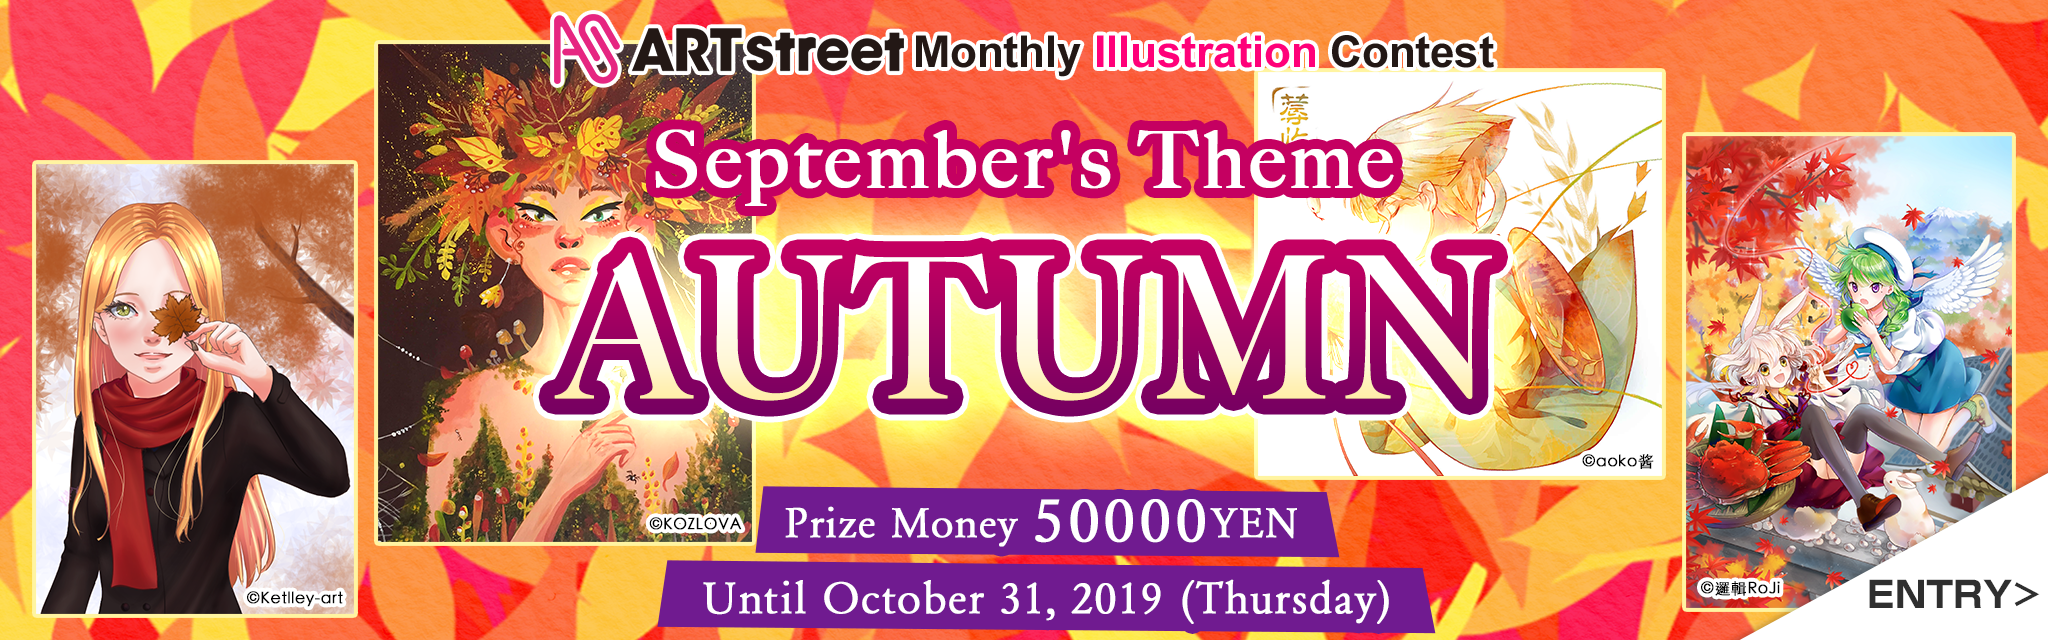 ART street Monthly Illustration Contest September's Theme: Autumn starts today!